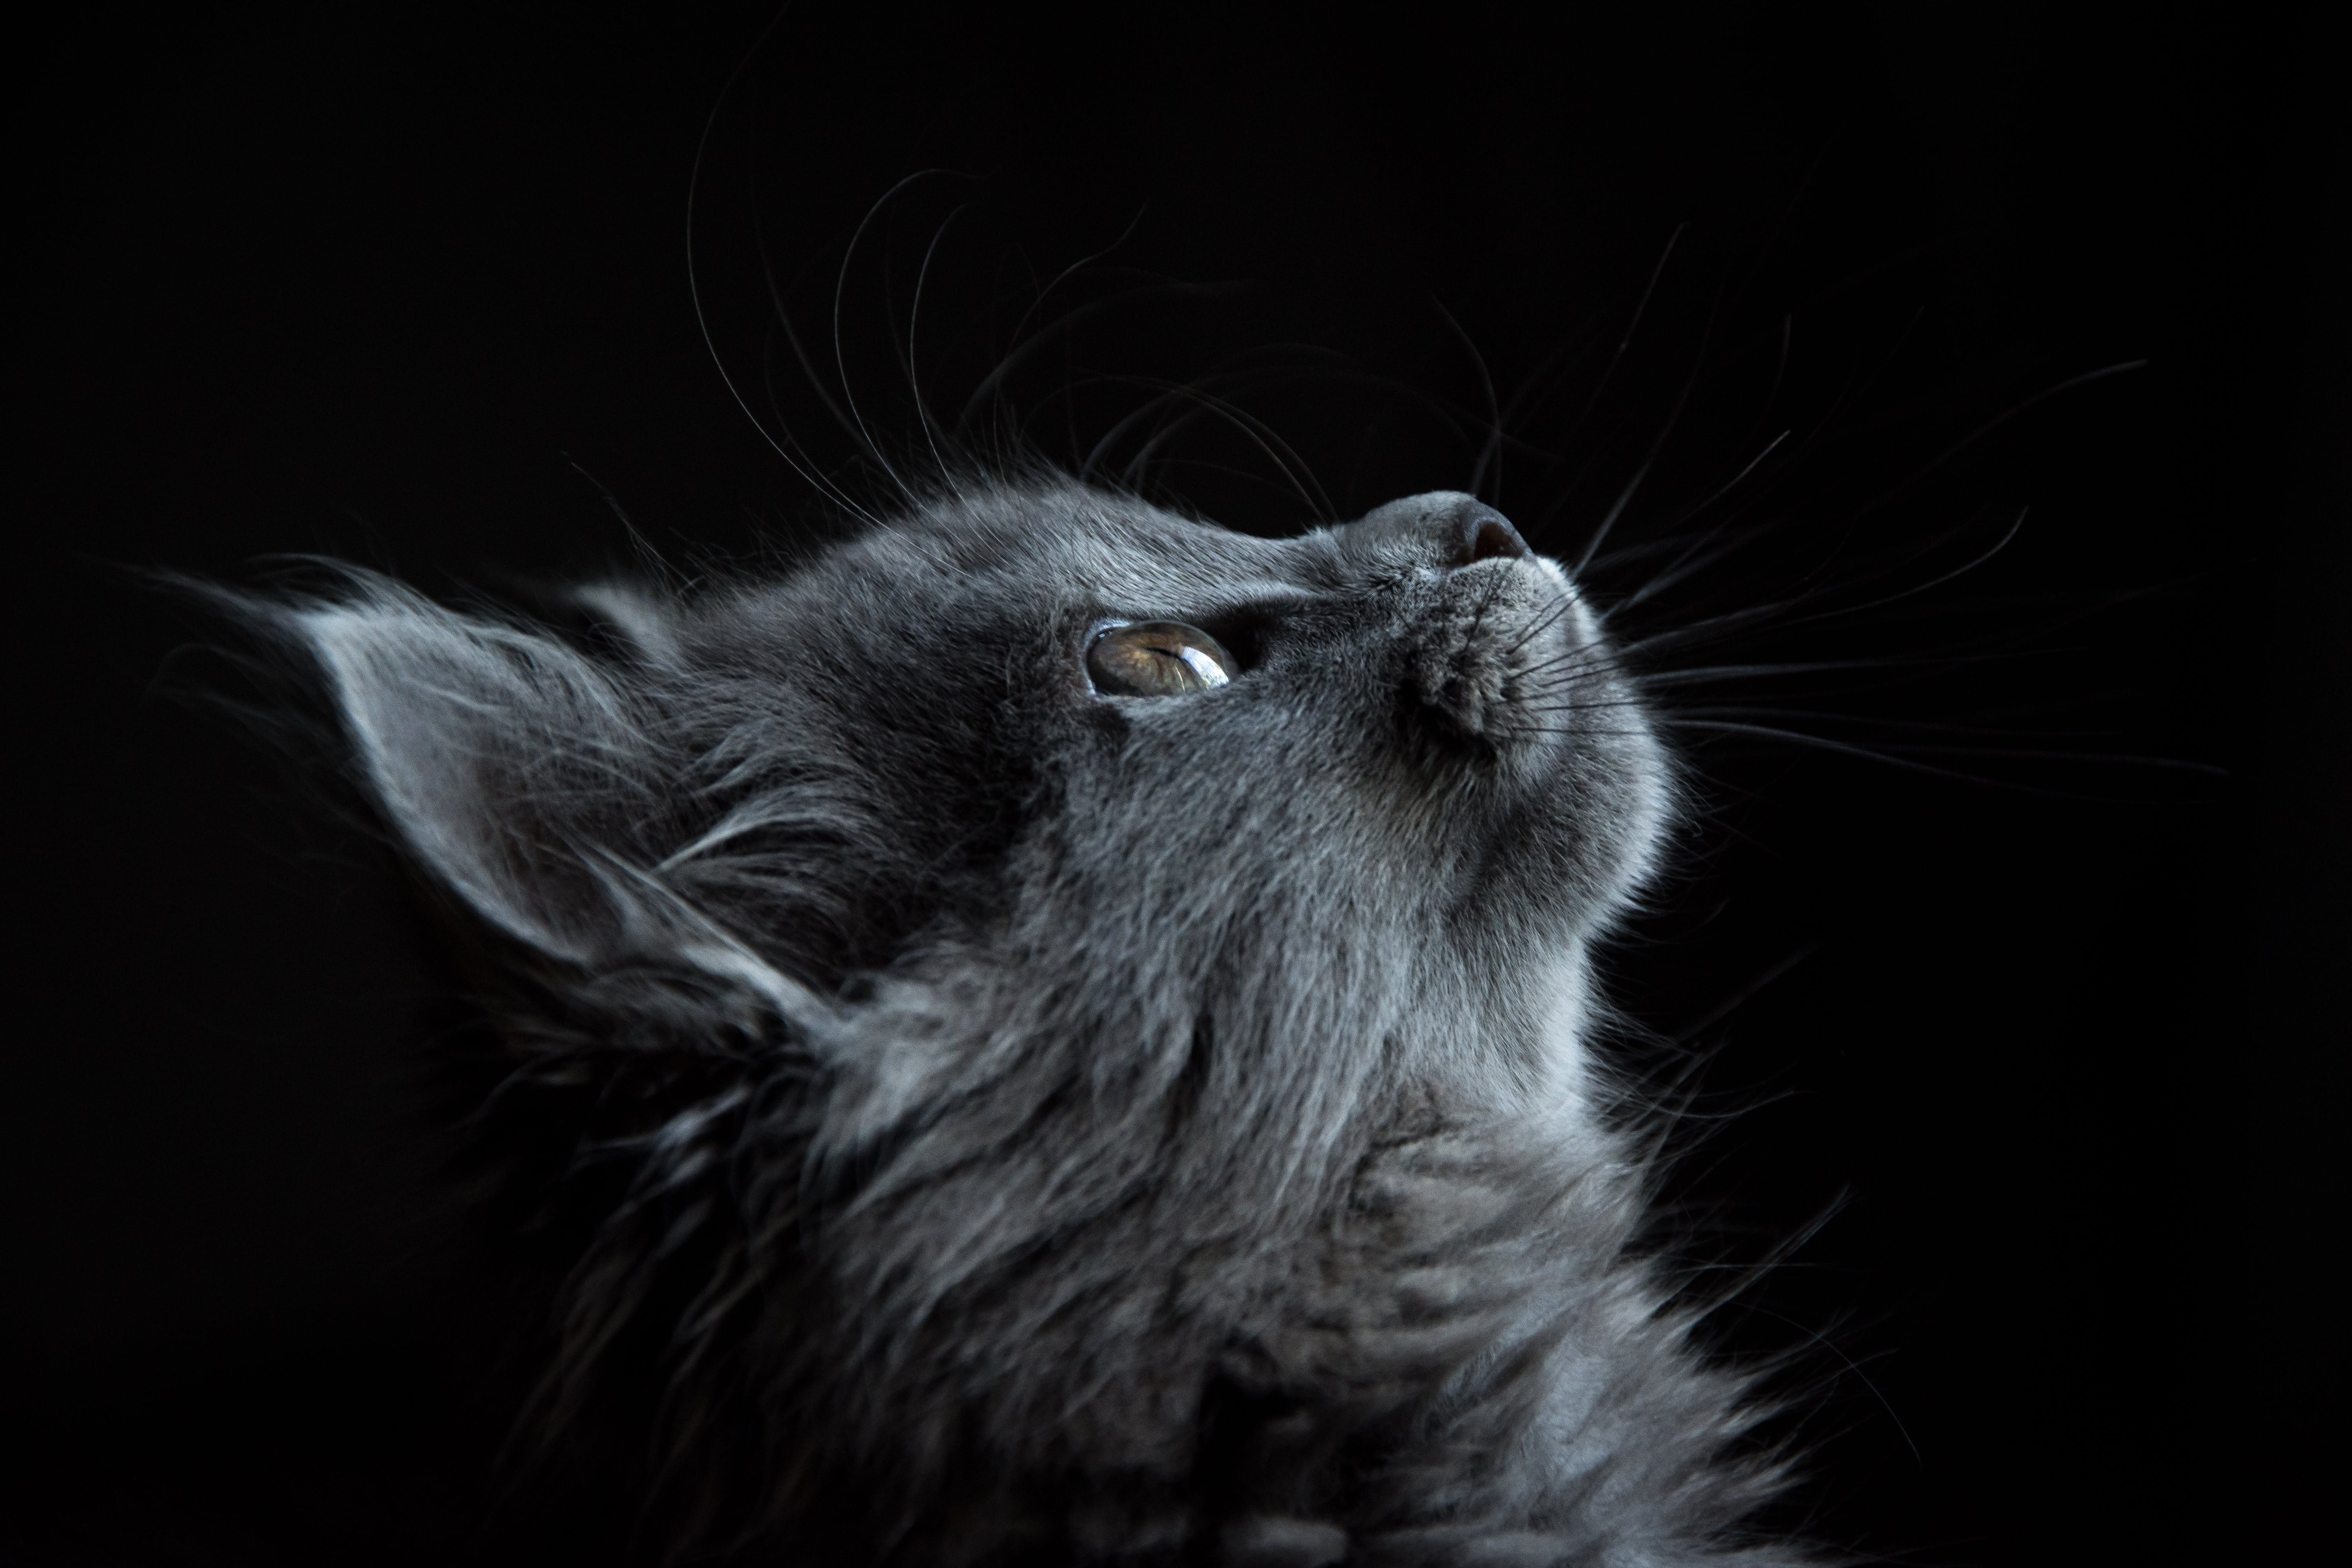 P O Of Gray Cat Lo Ng Up Against Black Background